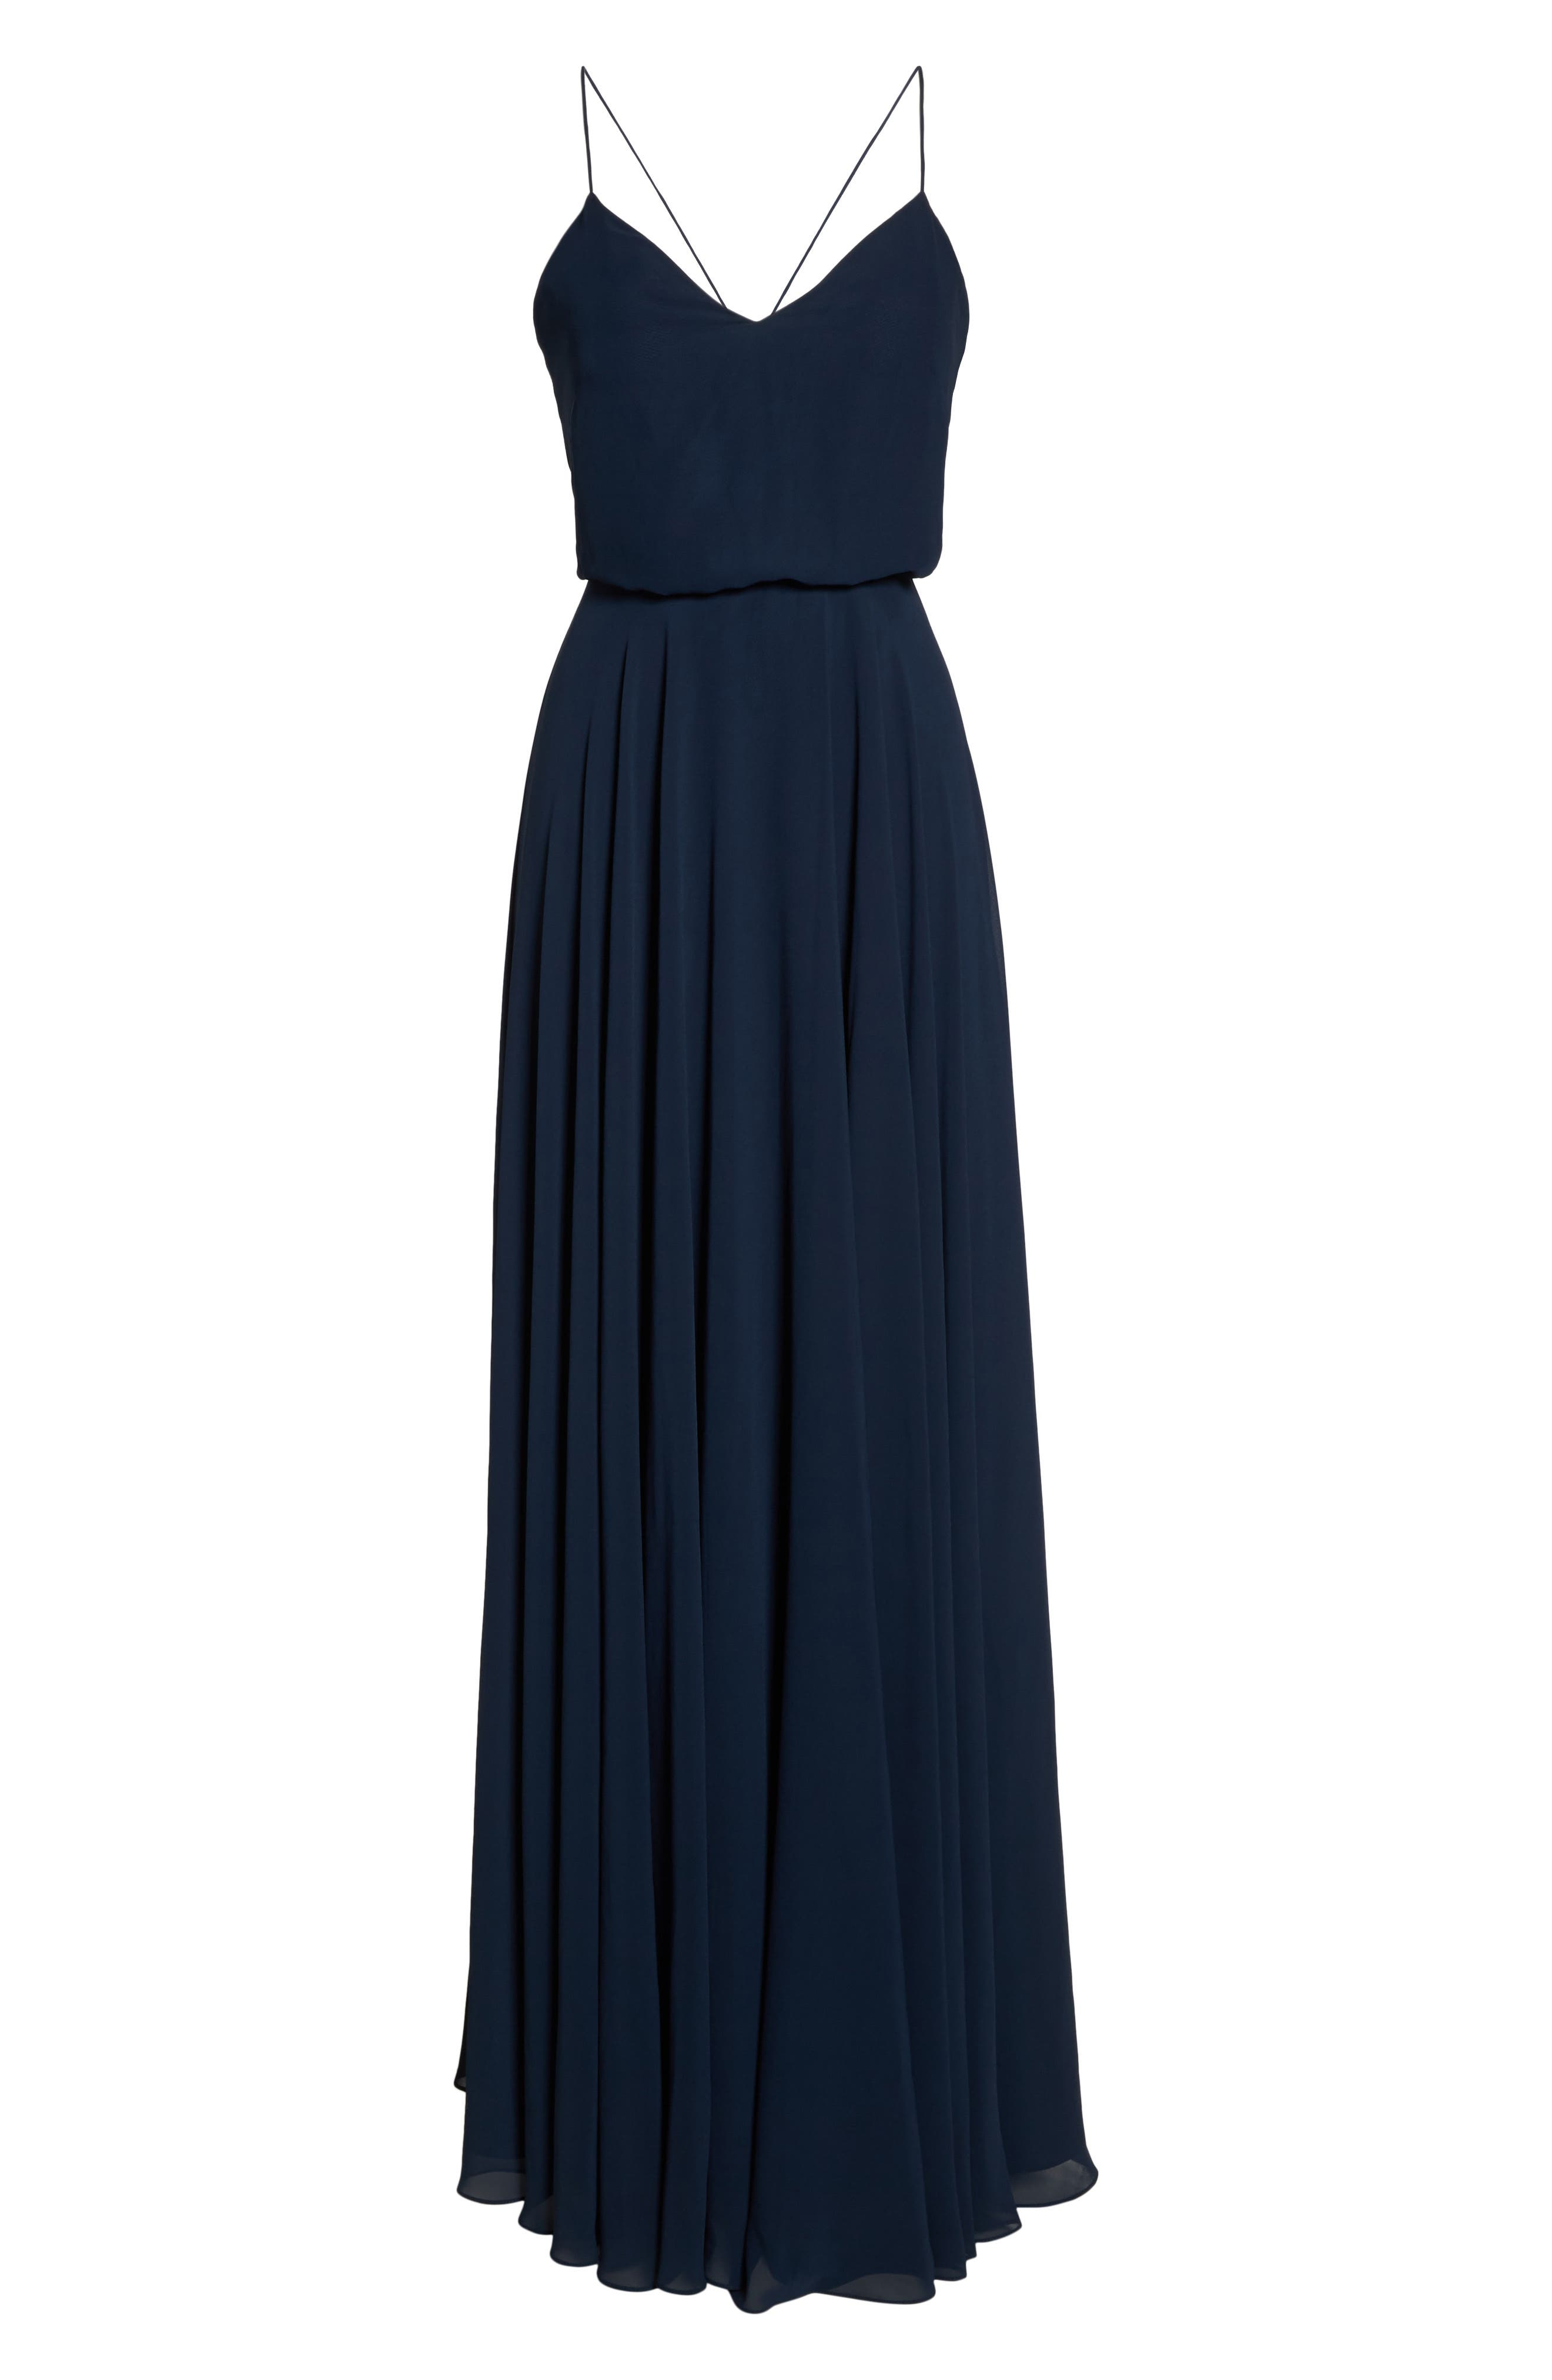 Inesse Chiffon V-Neck Spaghetti Strap Gown,                             Alternate thumbnail 7, color,                             NAVY